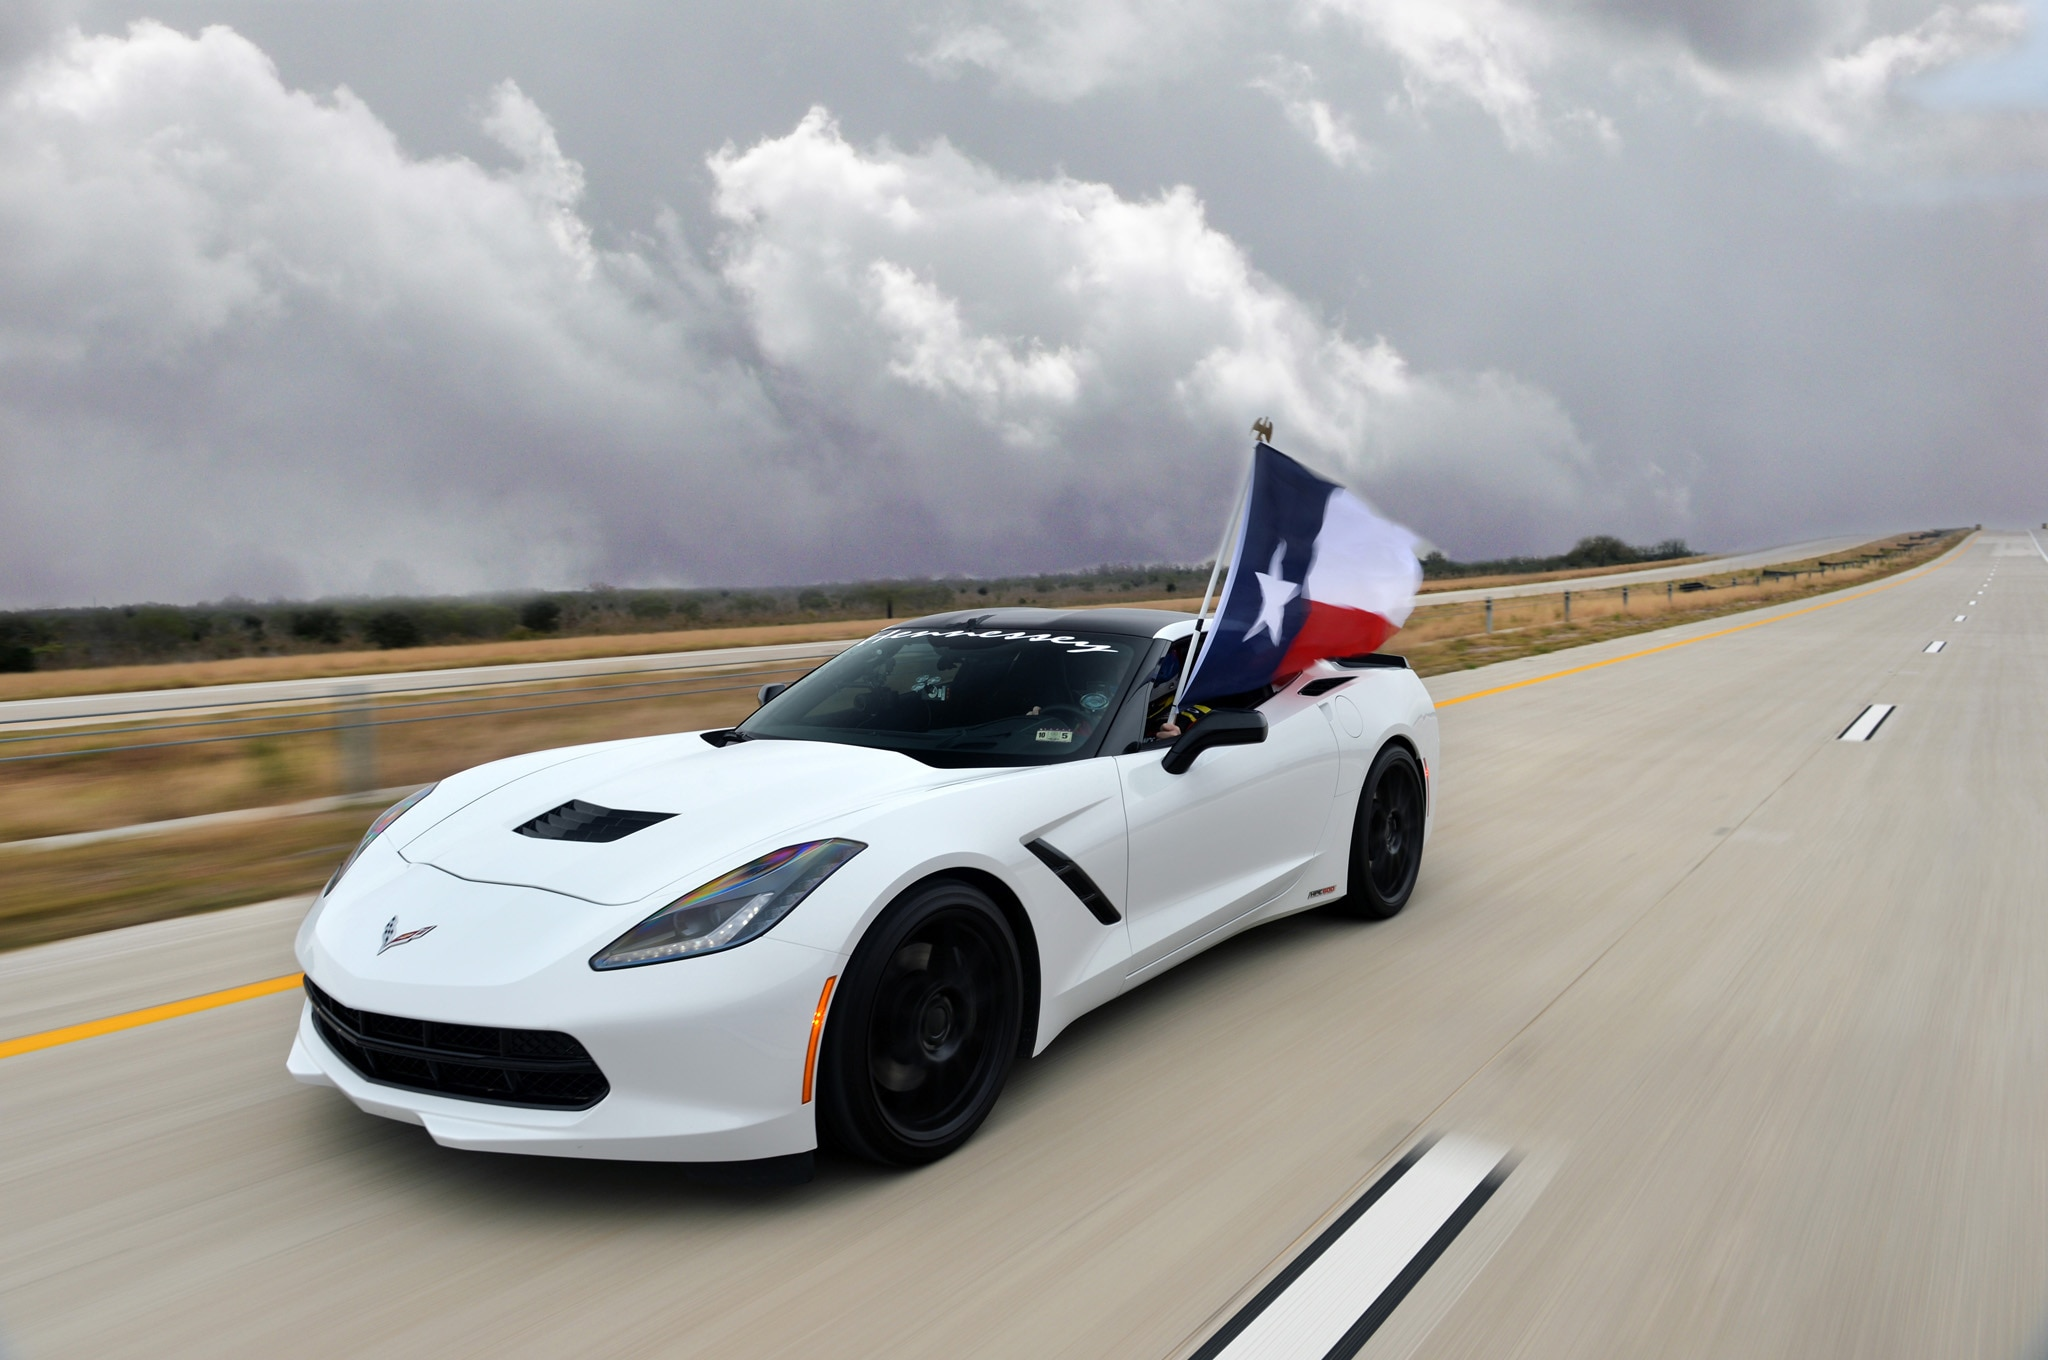 hennessey tuned 2014 chevrolet corvette eclipses 200 mph on texas highway automobile magazine - Corvette 2014 White